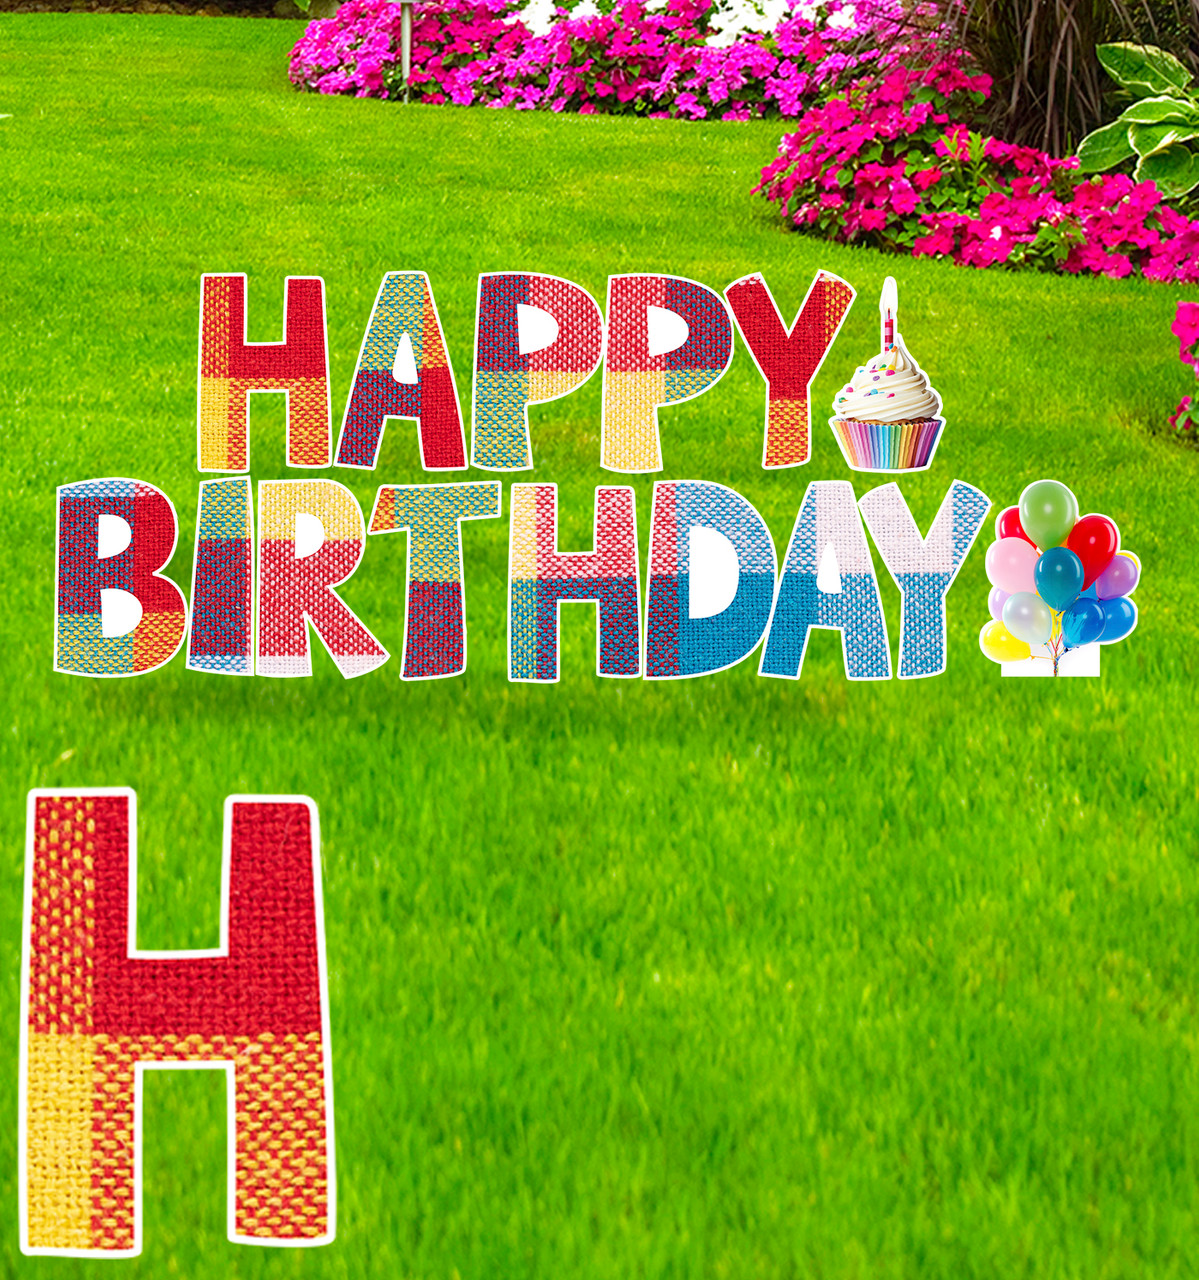 Coroplast plaid Paper Happy Birthday yard signs with background.